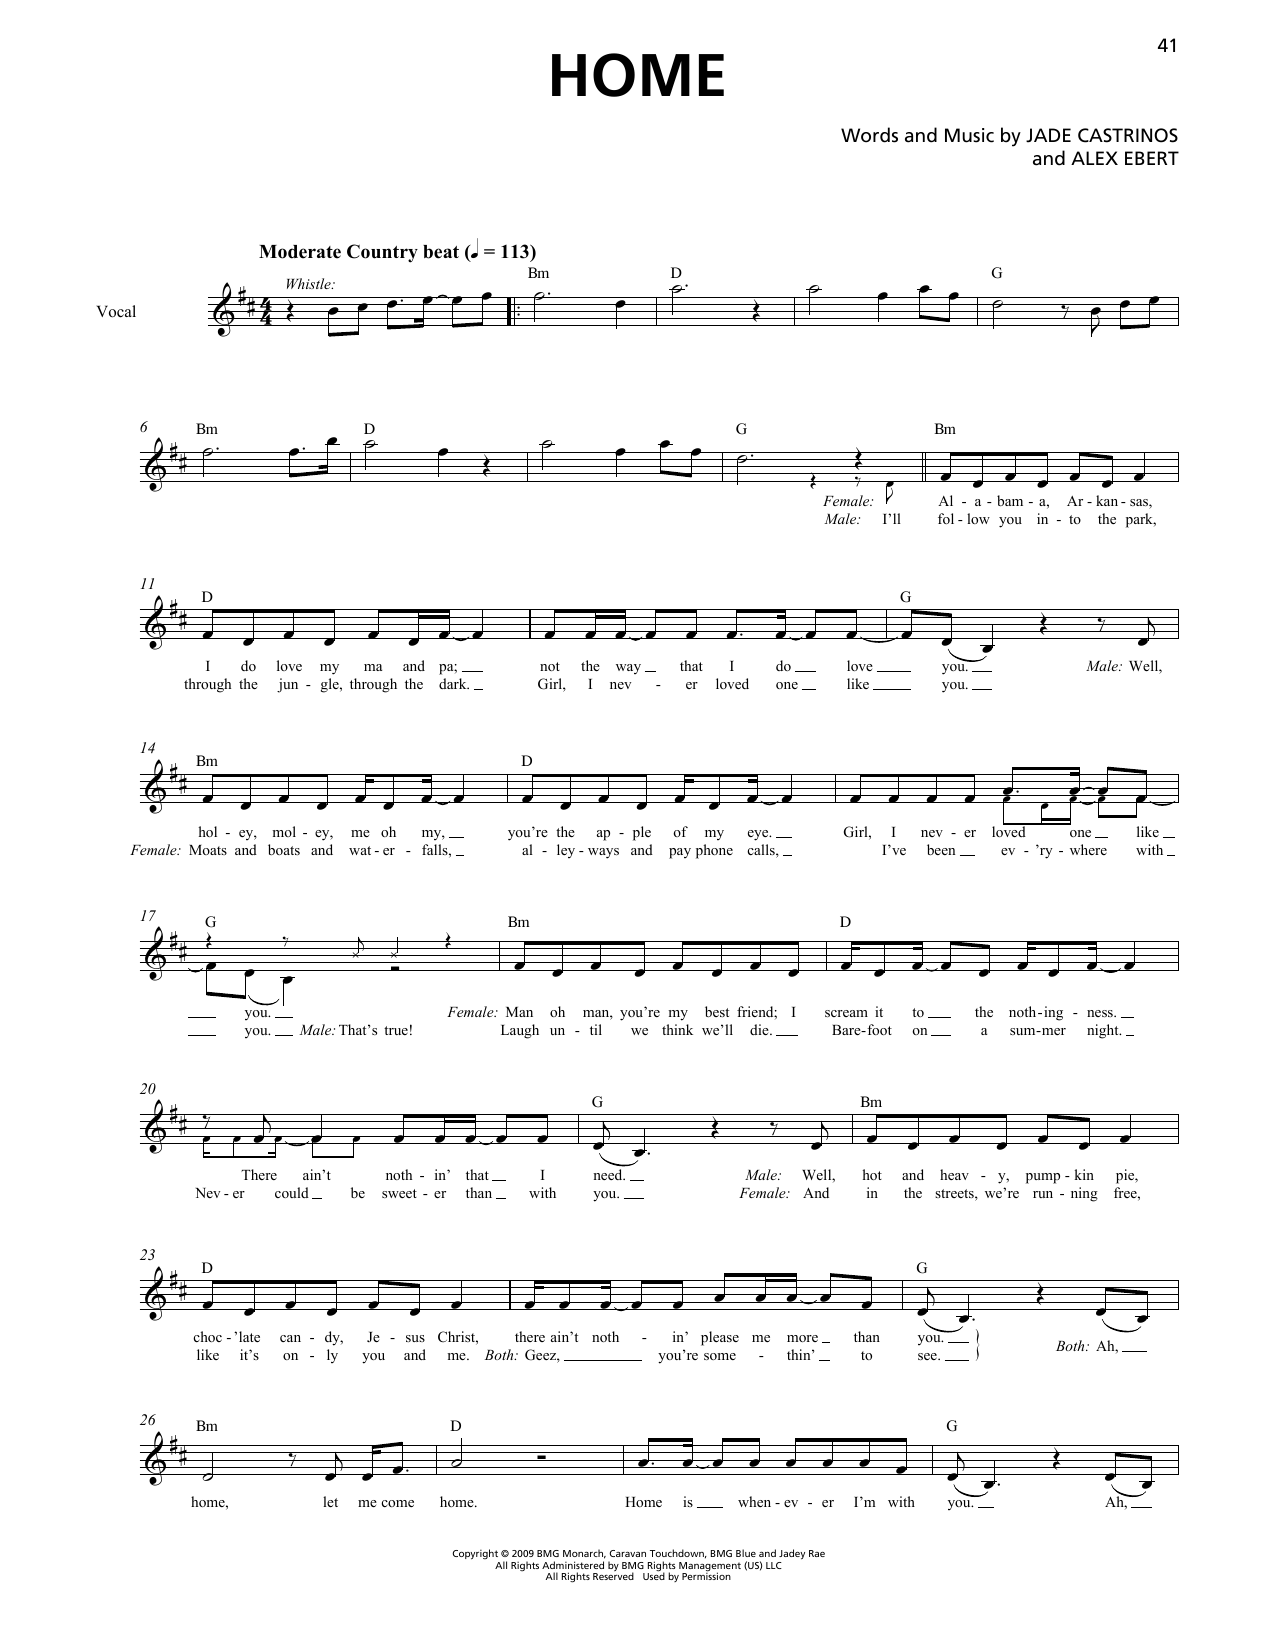 Edward Sharpe & the Magnetic Zeros Home (Horn Section) sheet music notes printable PDF score